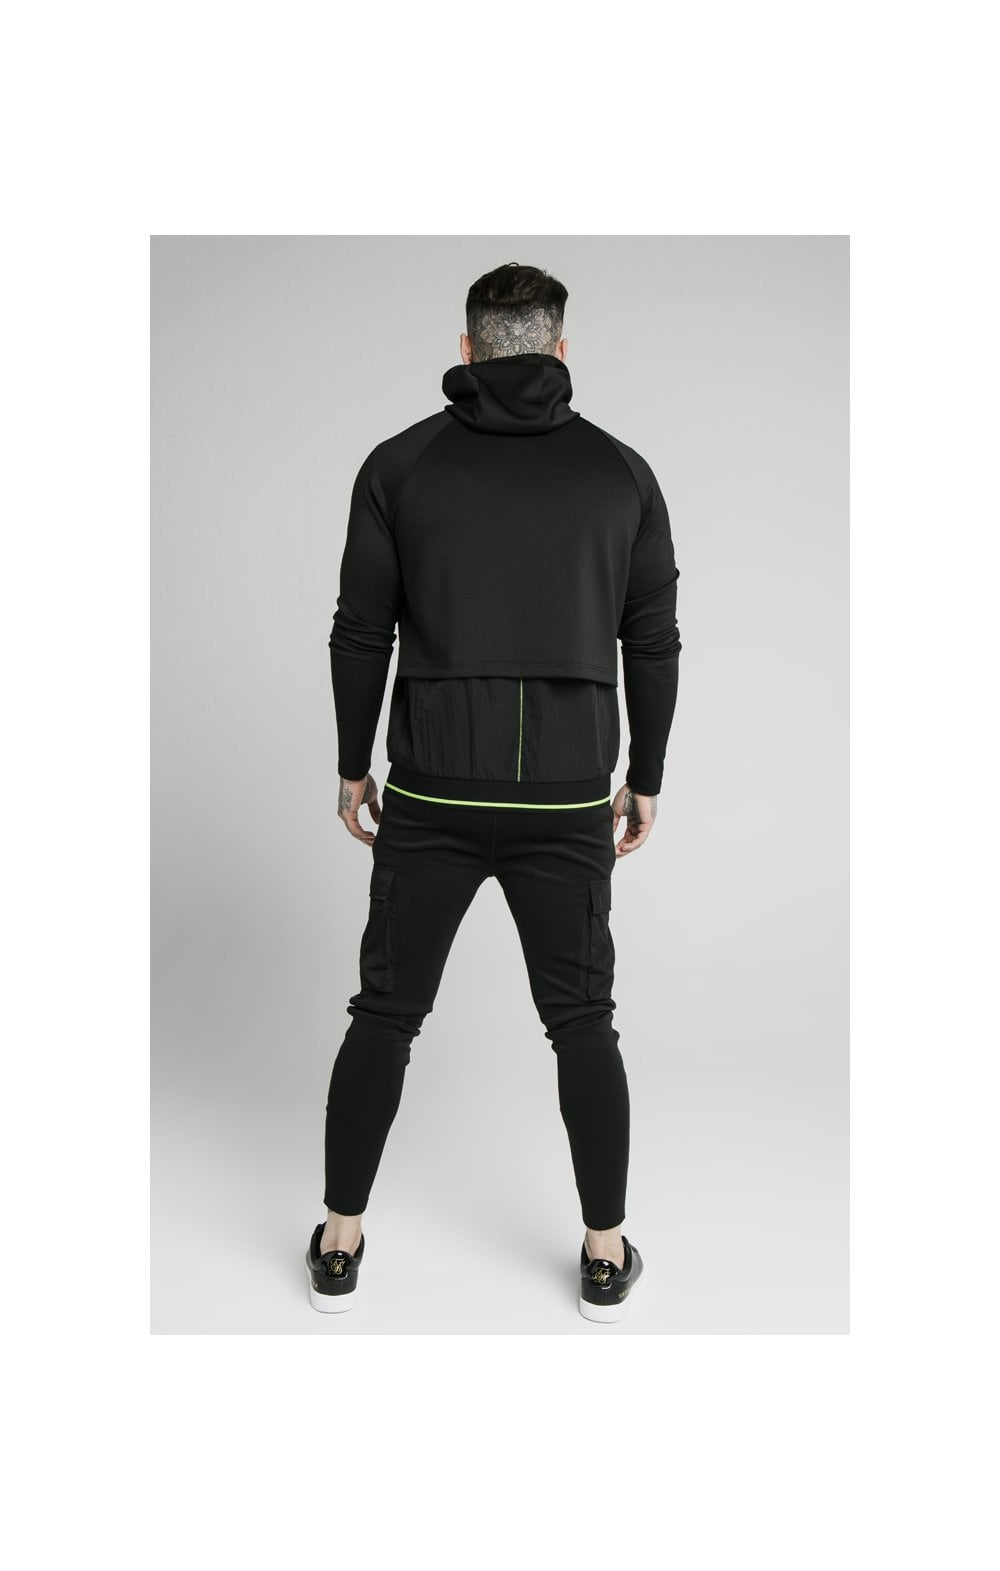 SikSilk Adapt Crushed Nylon Zip Through – Black (7)